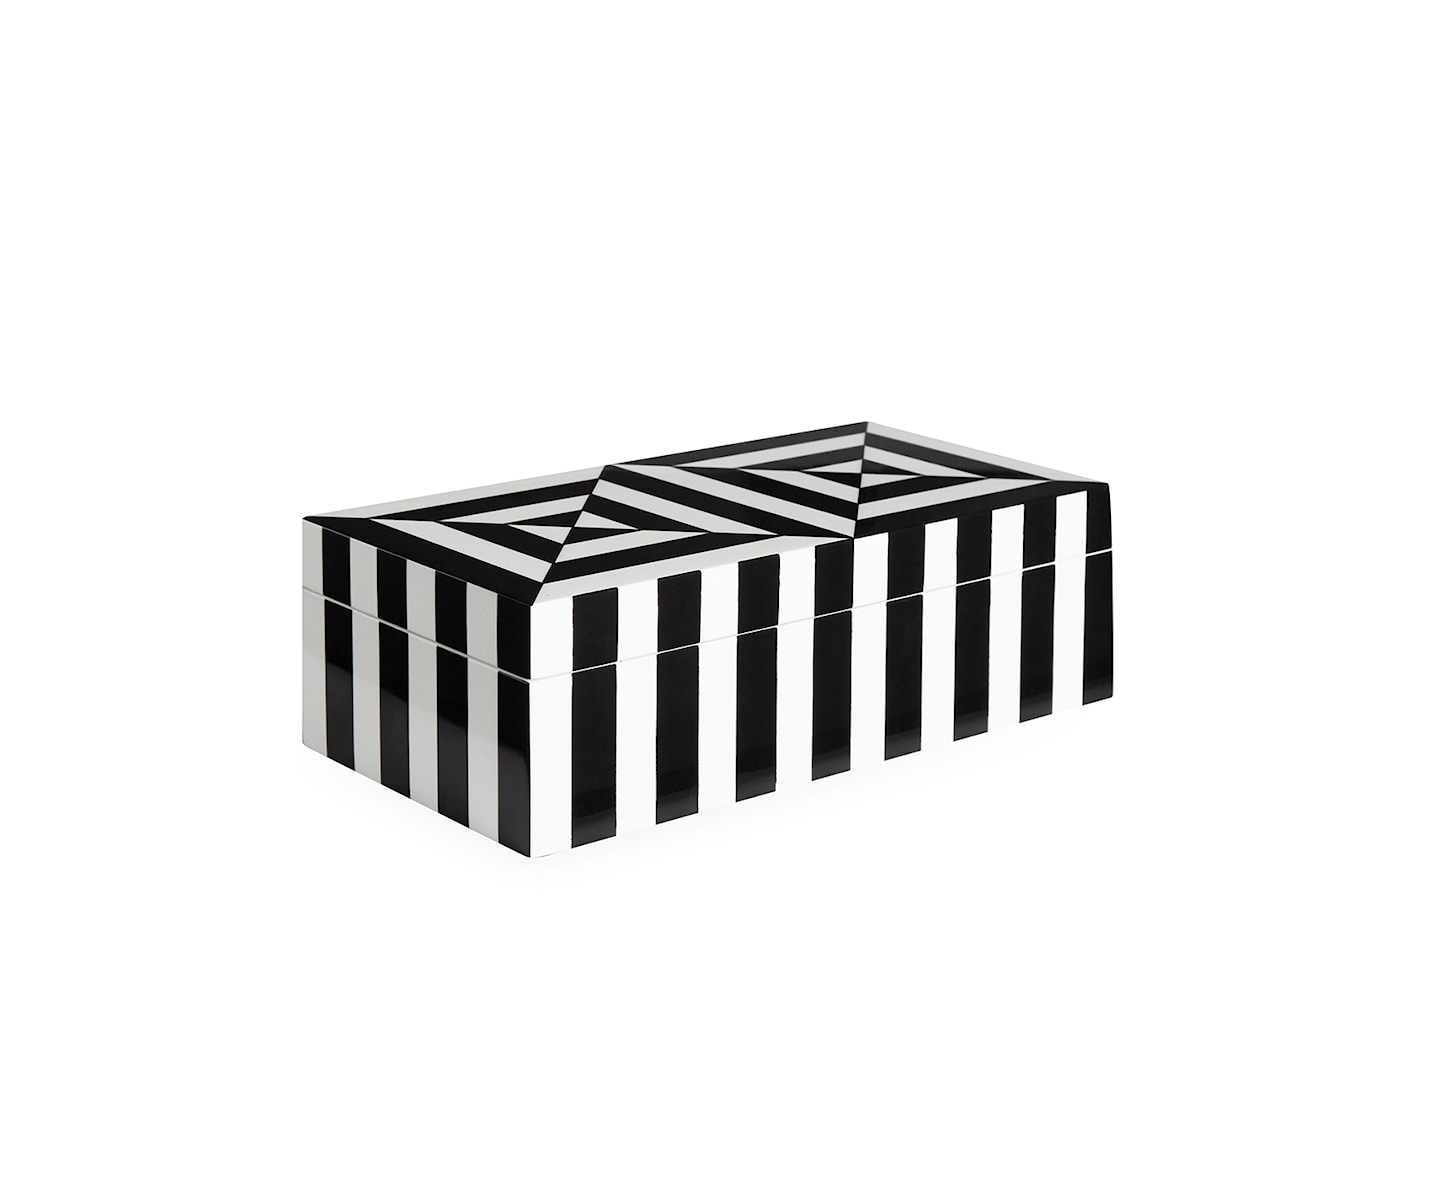 Jonathan Adler Op Art Box Small